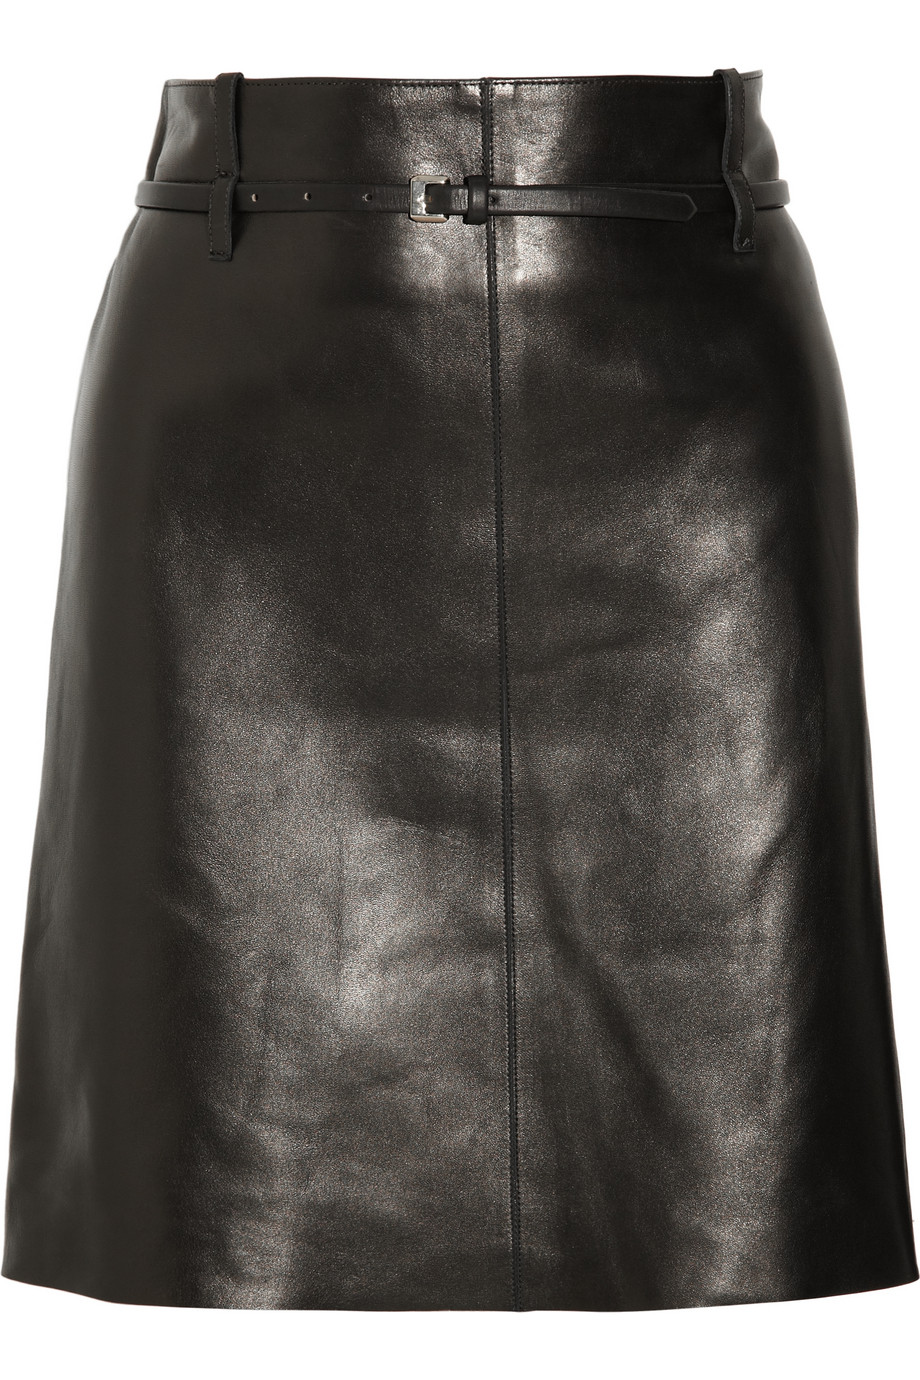 Chloé Belted Leather Skirt in Black | Lyst